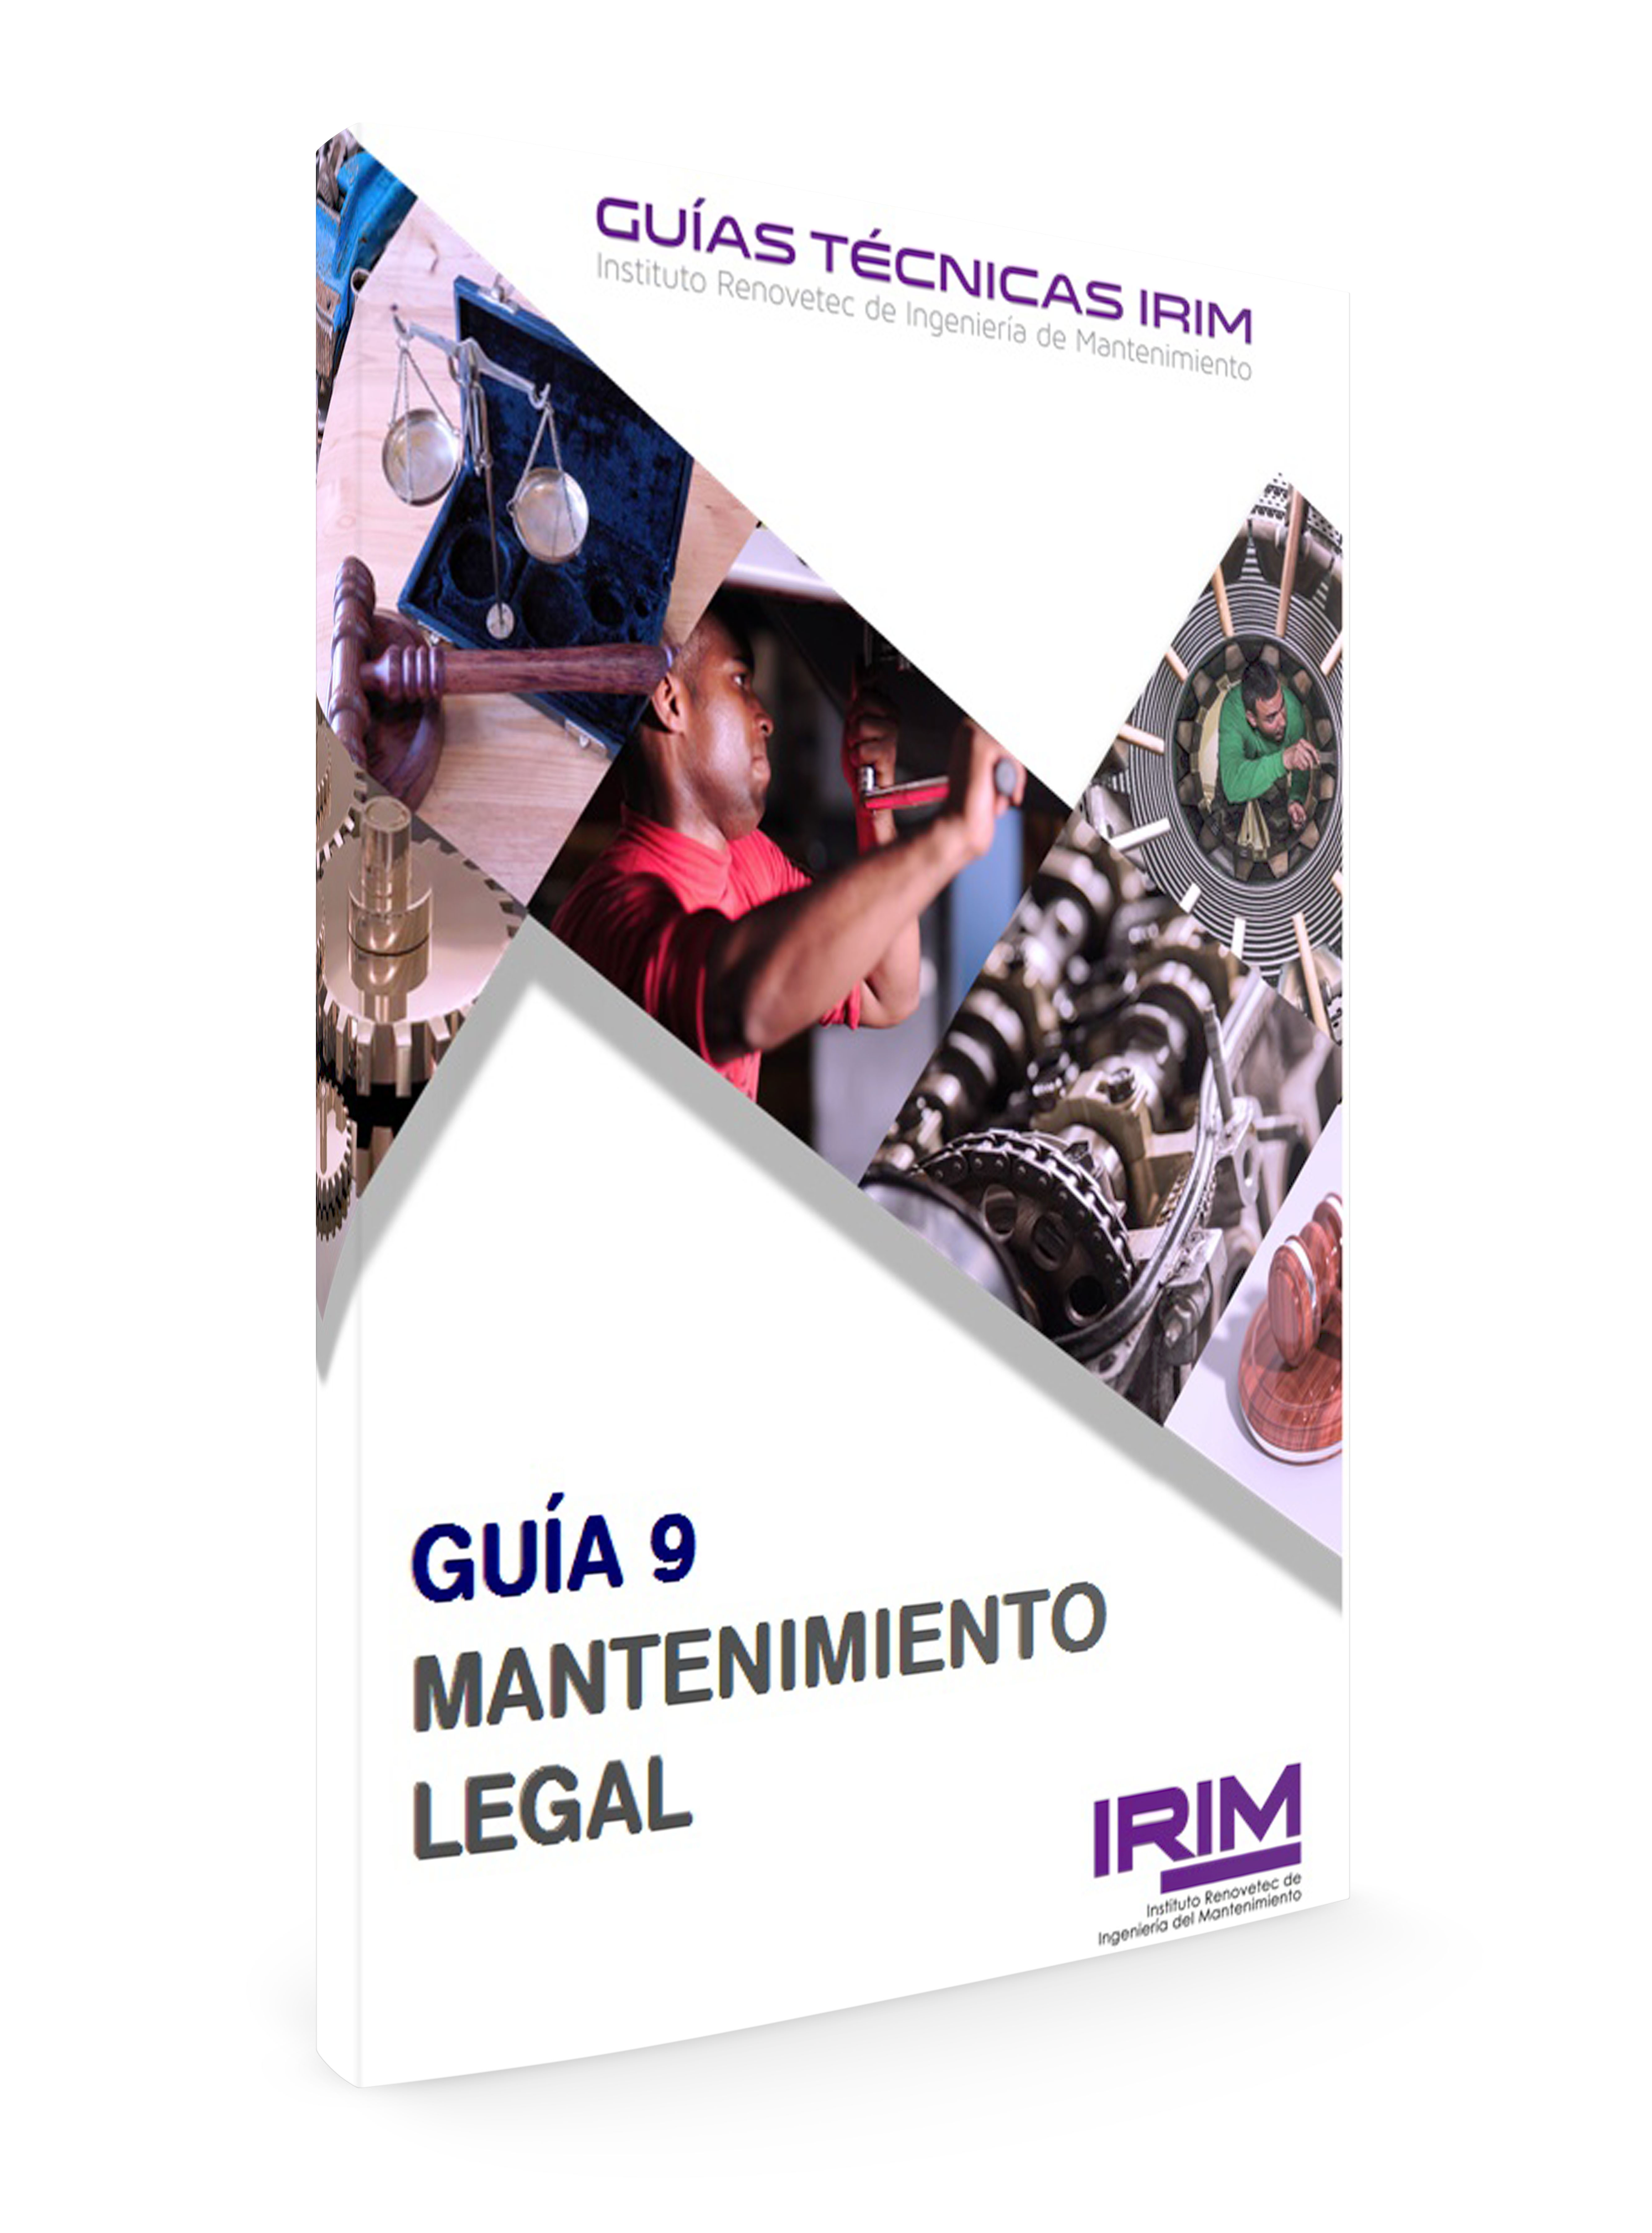 GUIA 9 IRIM: MATENIMIENTO LEGAL